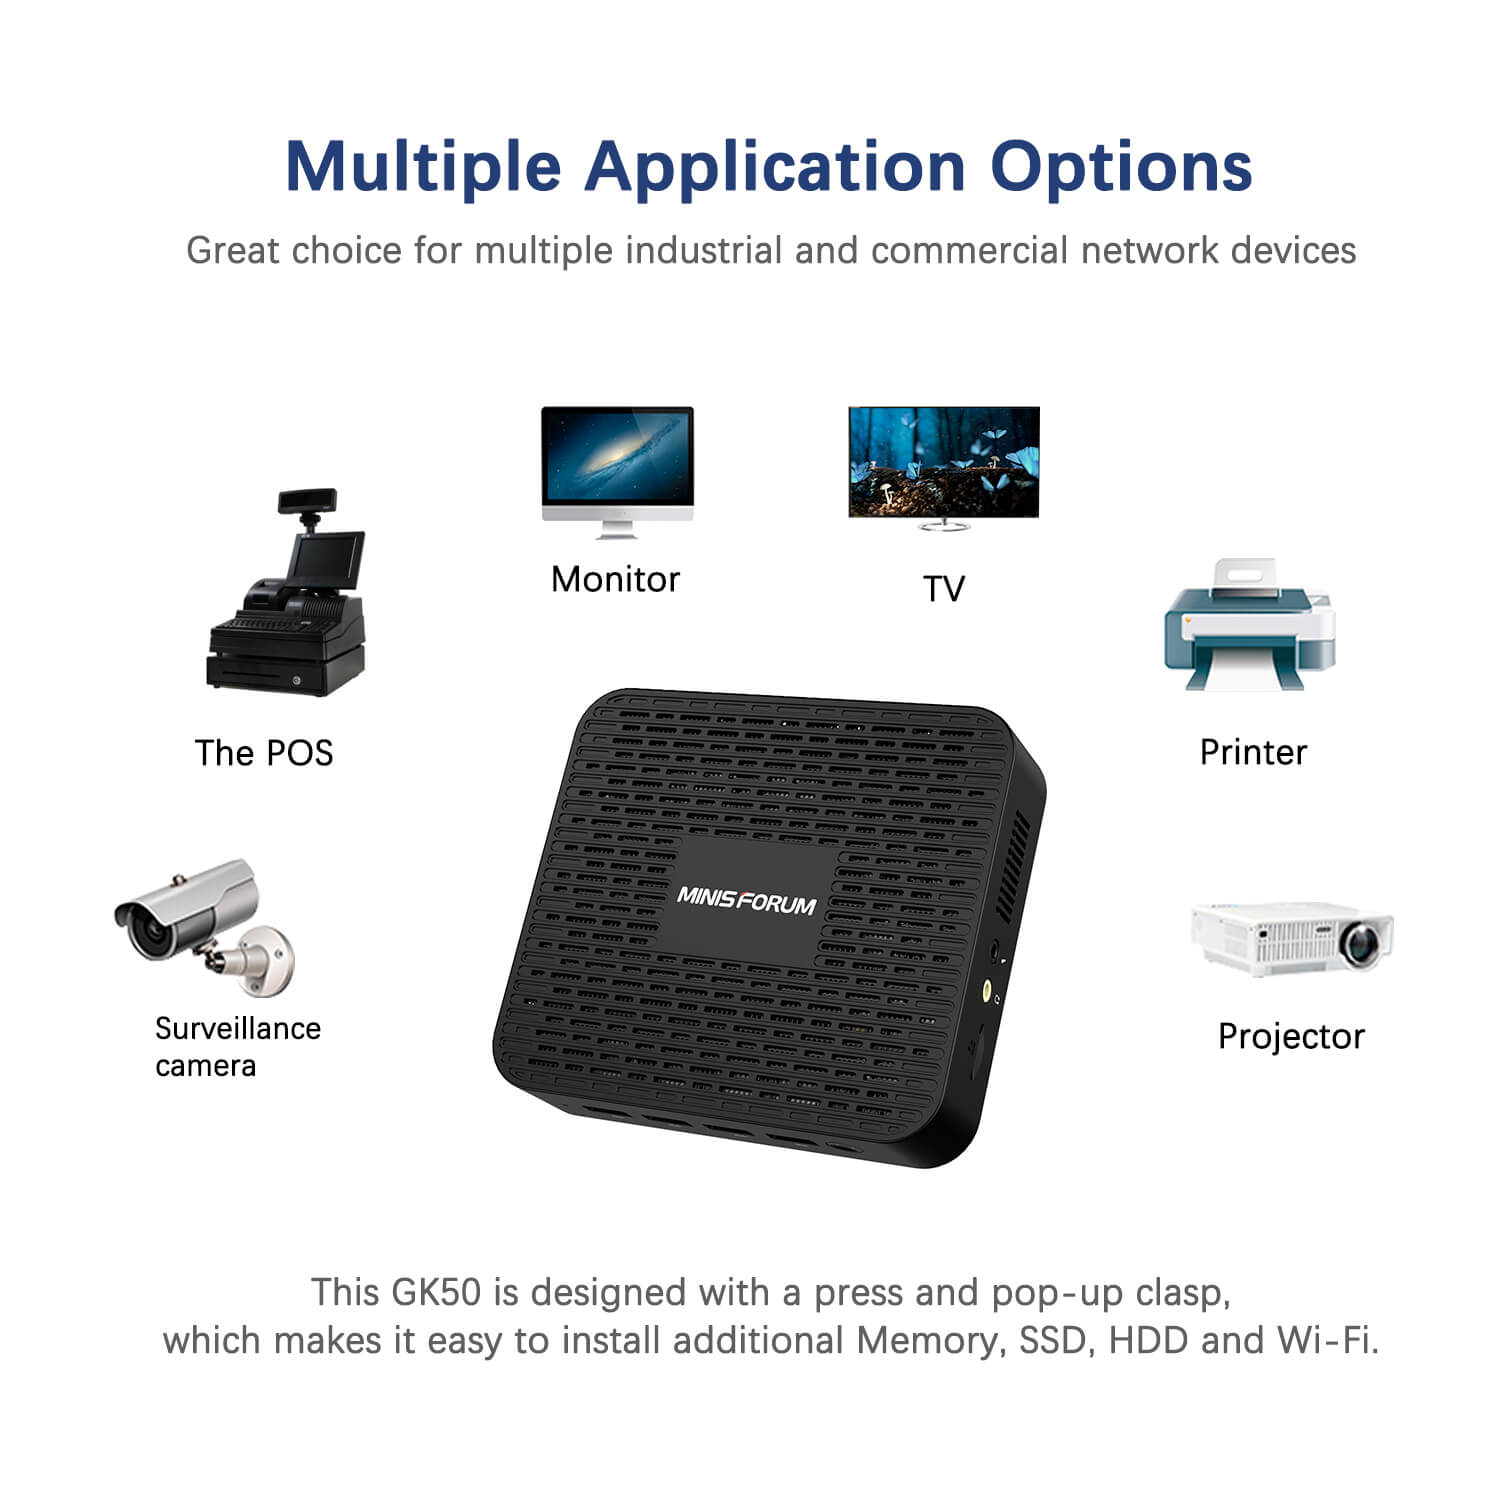 MinisForum GK50 Windows Mini PC for Home or Office - Showing all applicable scenarios